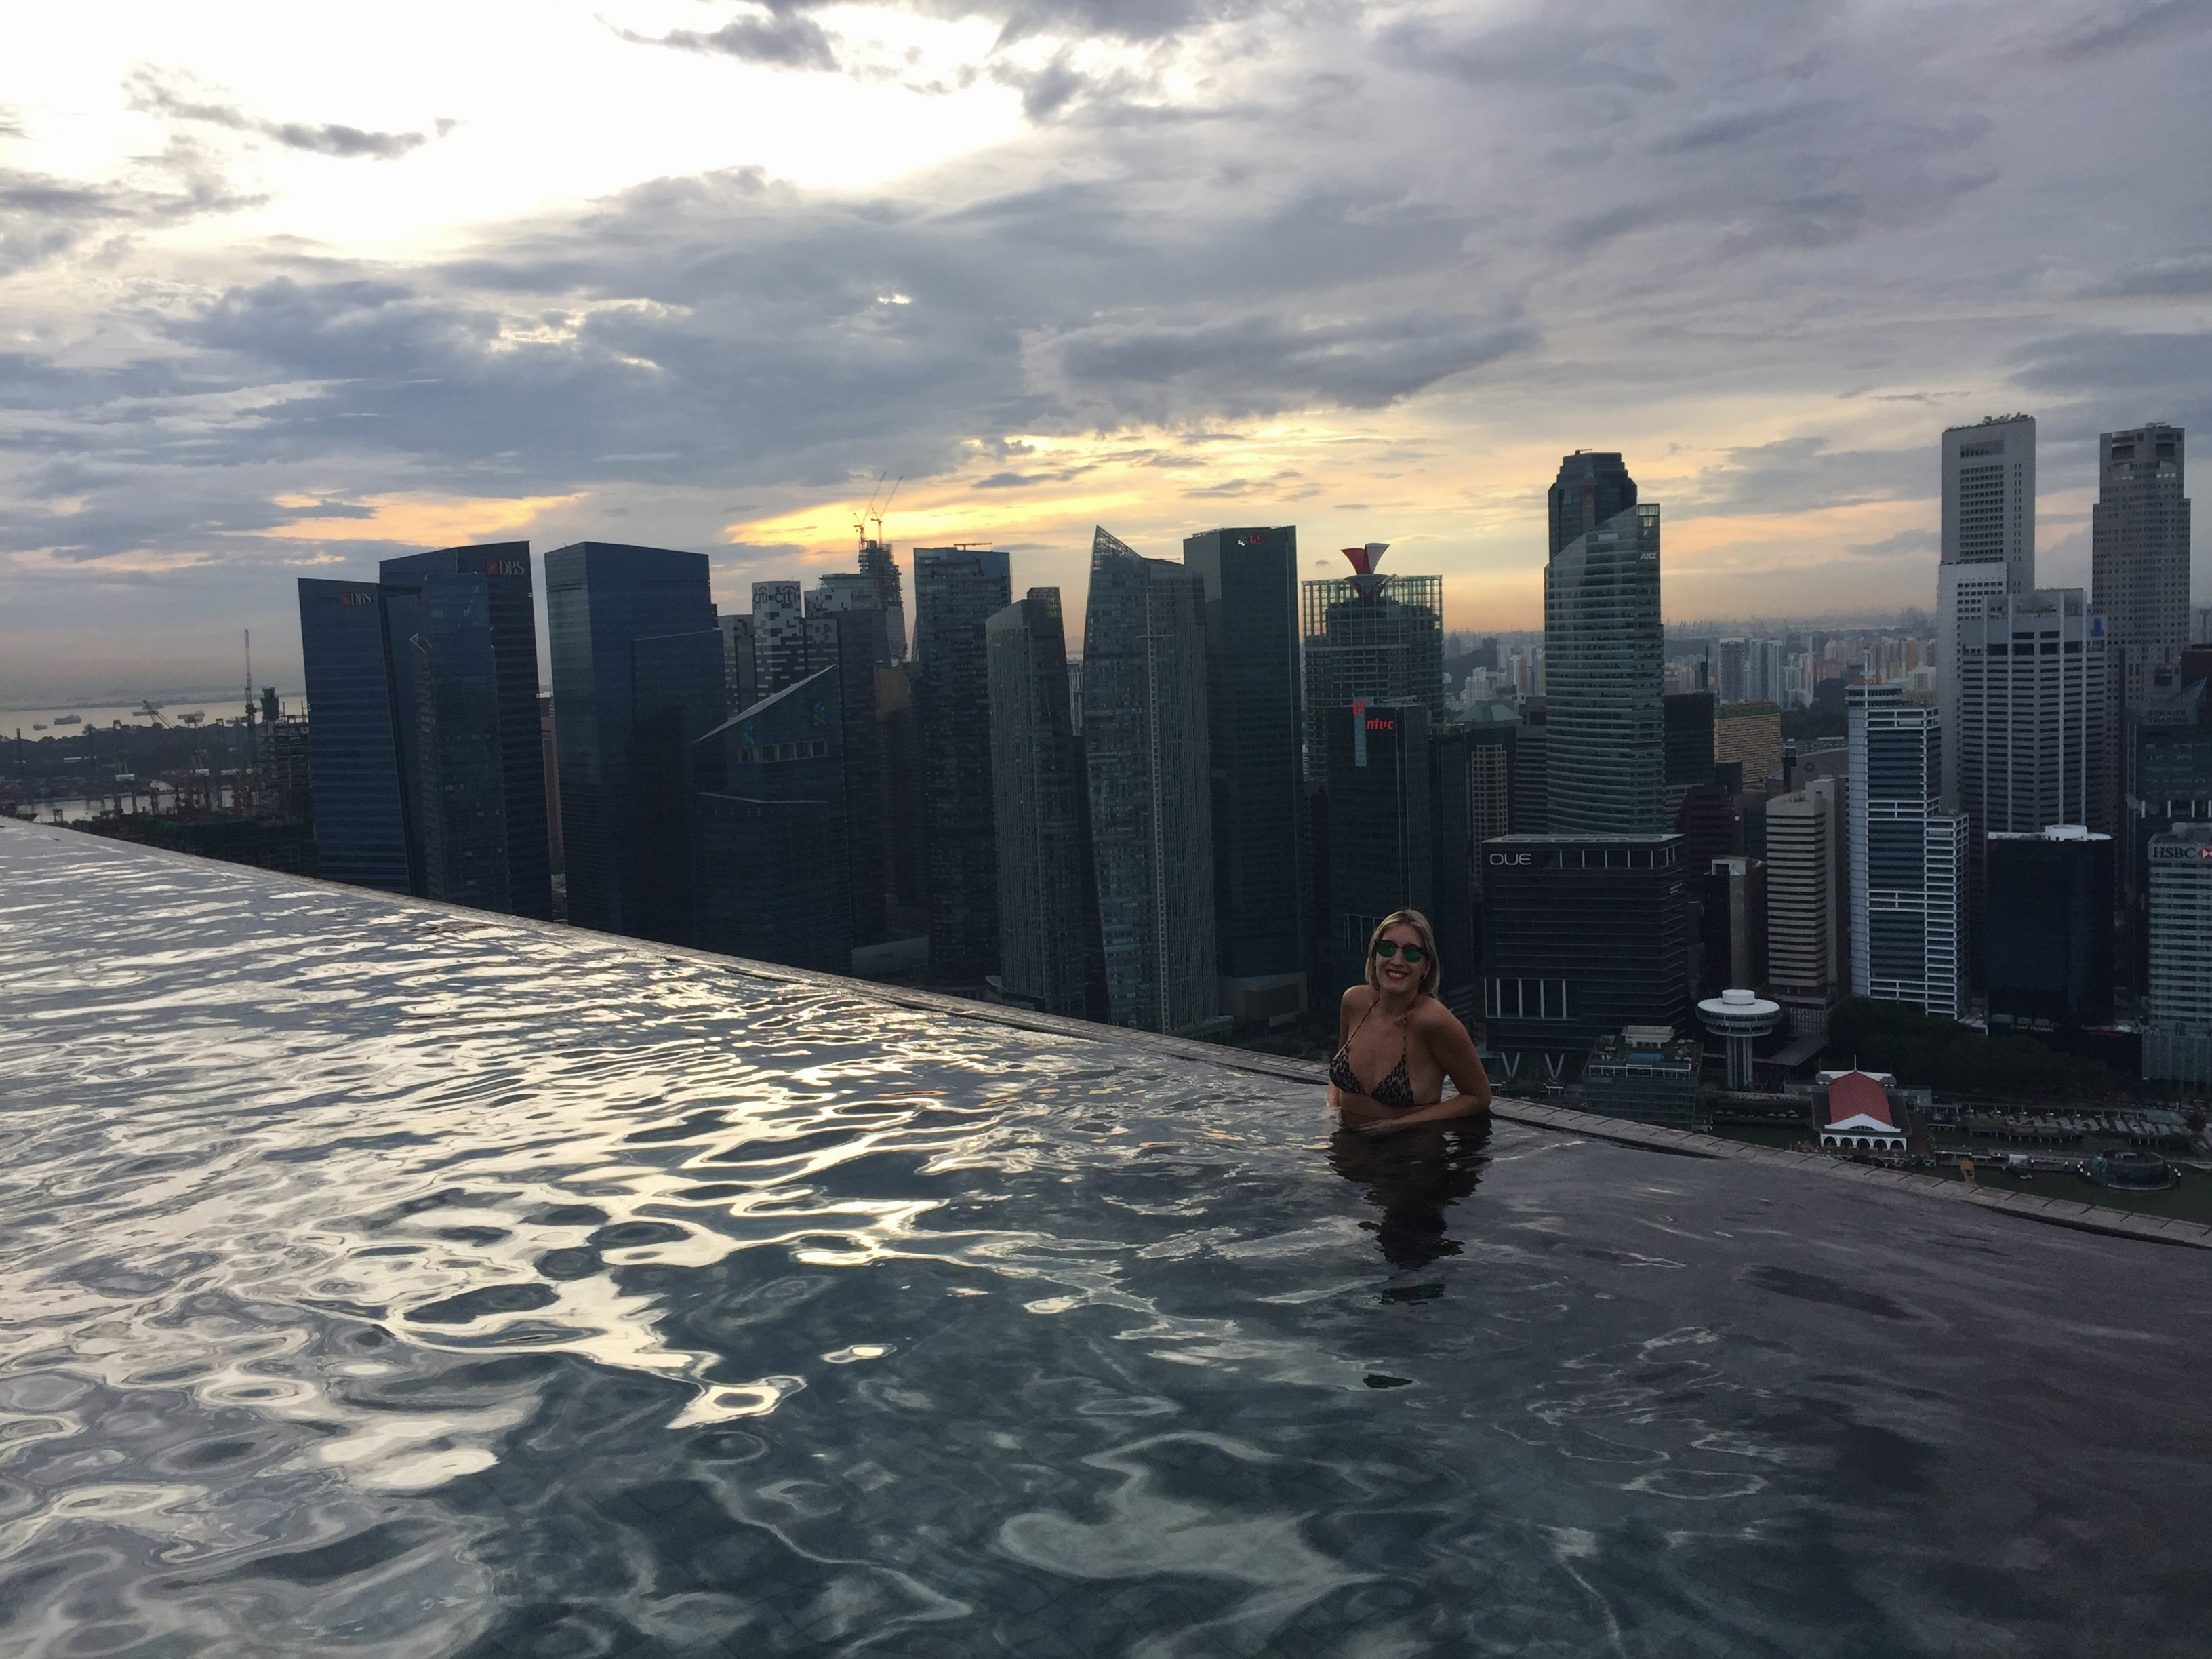 Marina bay sands pool / Piscina / Singapore Cingapura